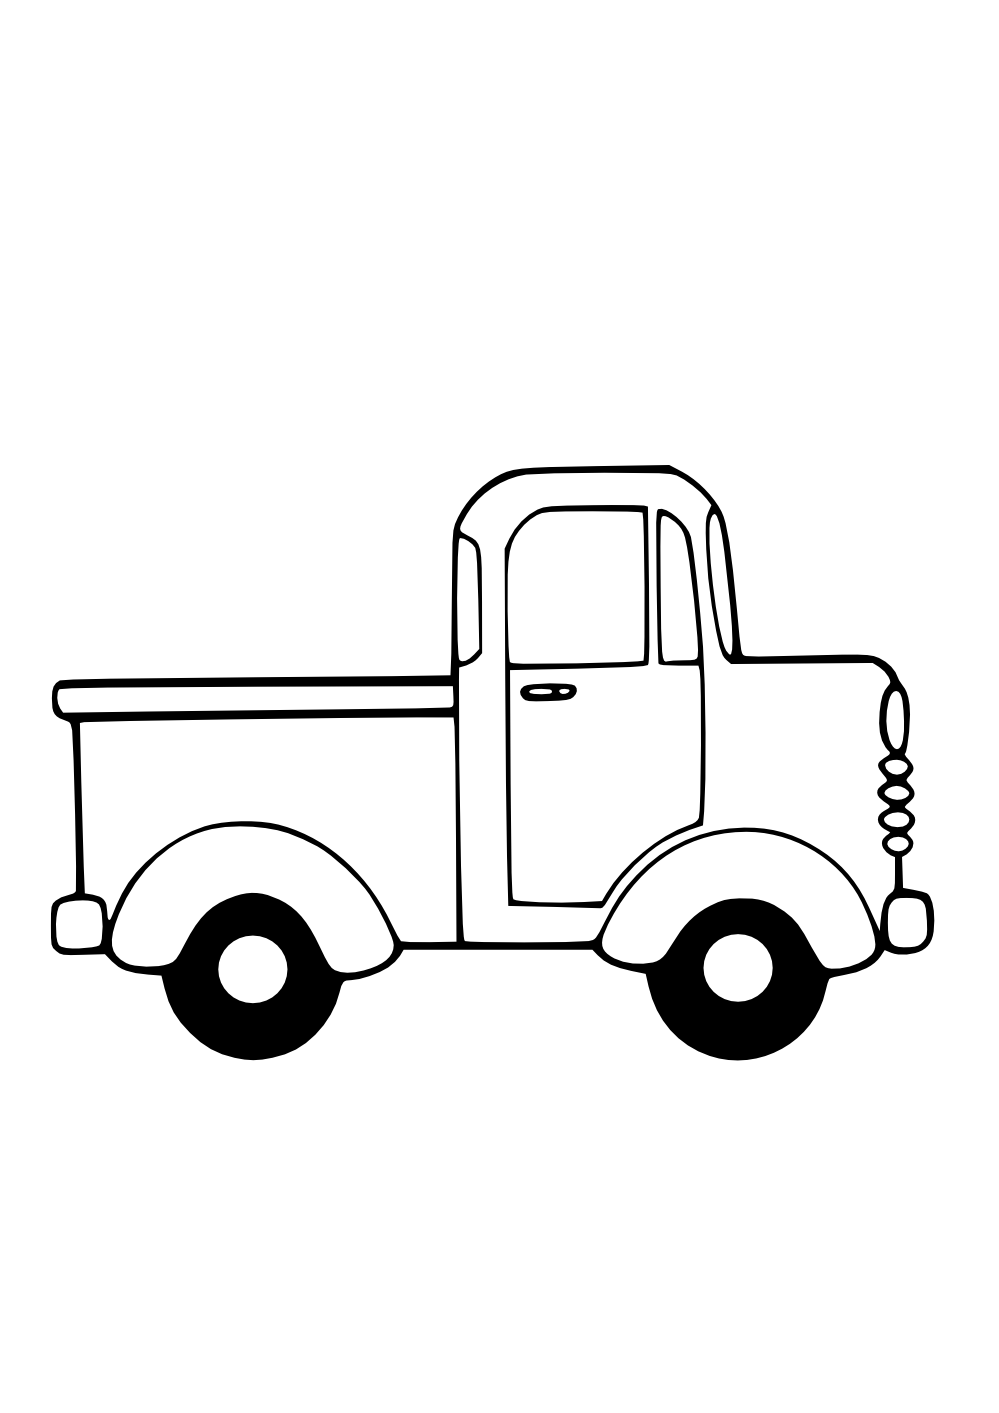 clipart black and white download Truck panda free images. Bullet clipart black and white.